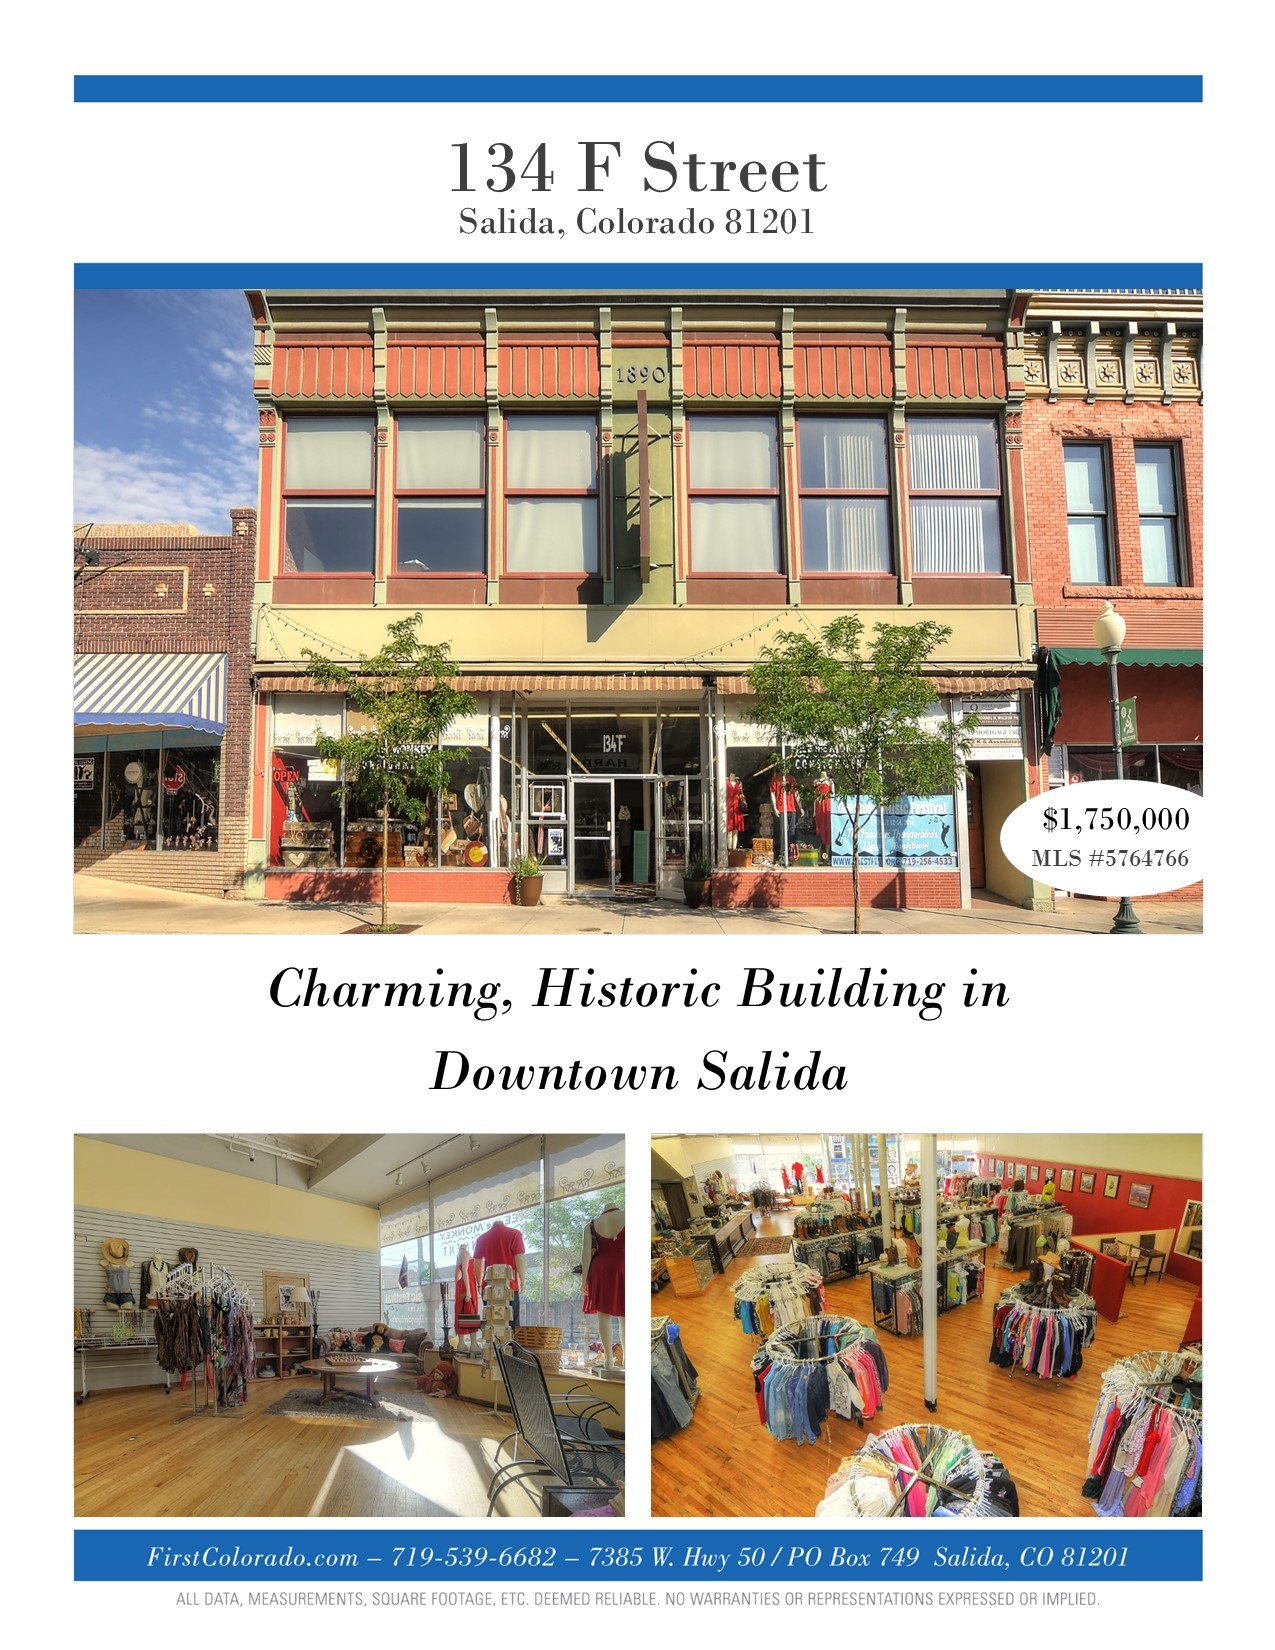 Charming, historic building in downtown Salida, CO!